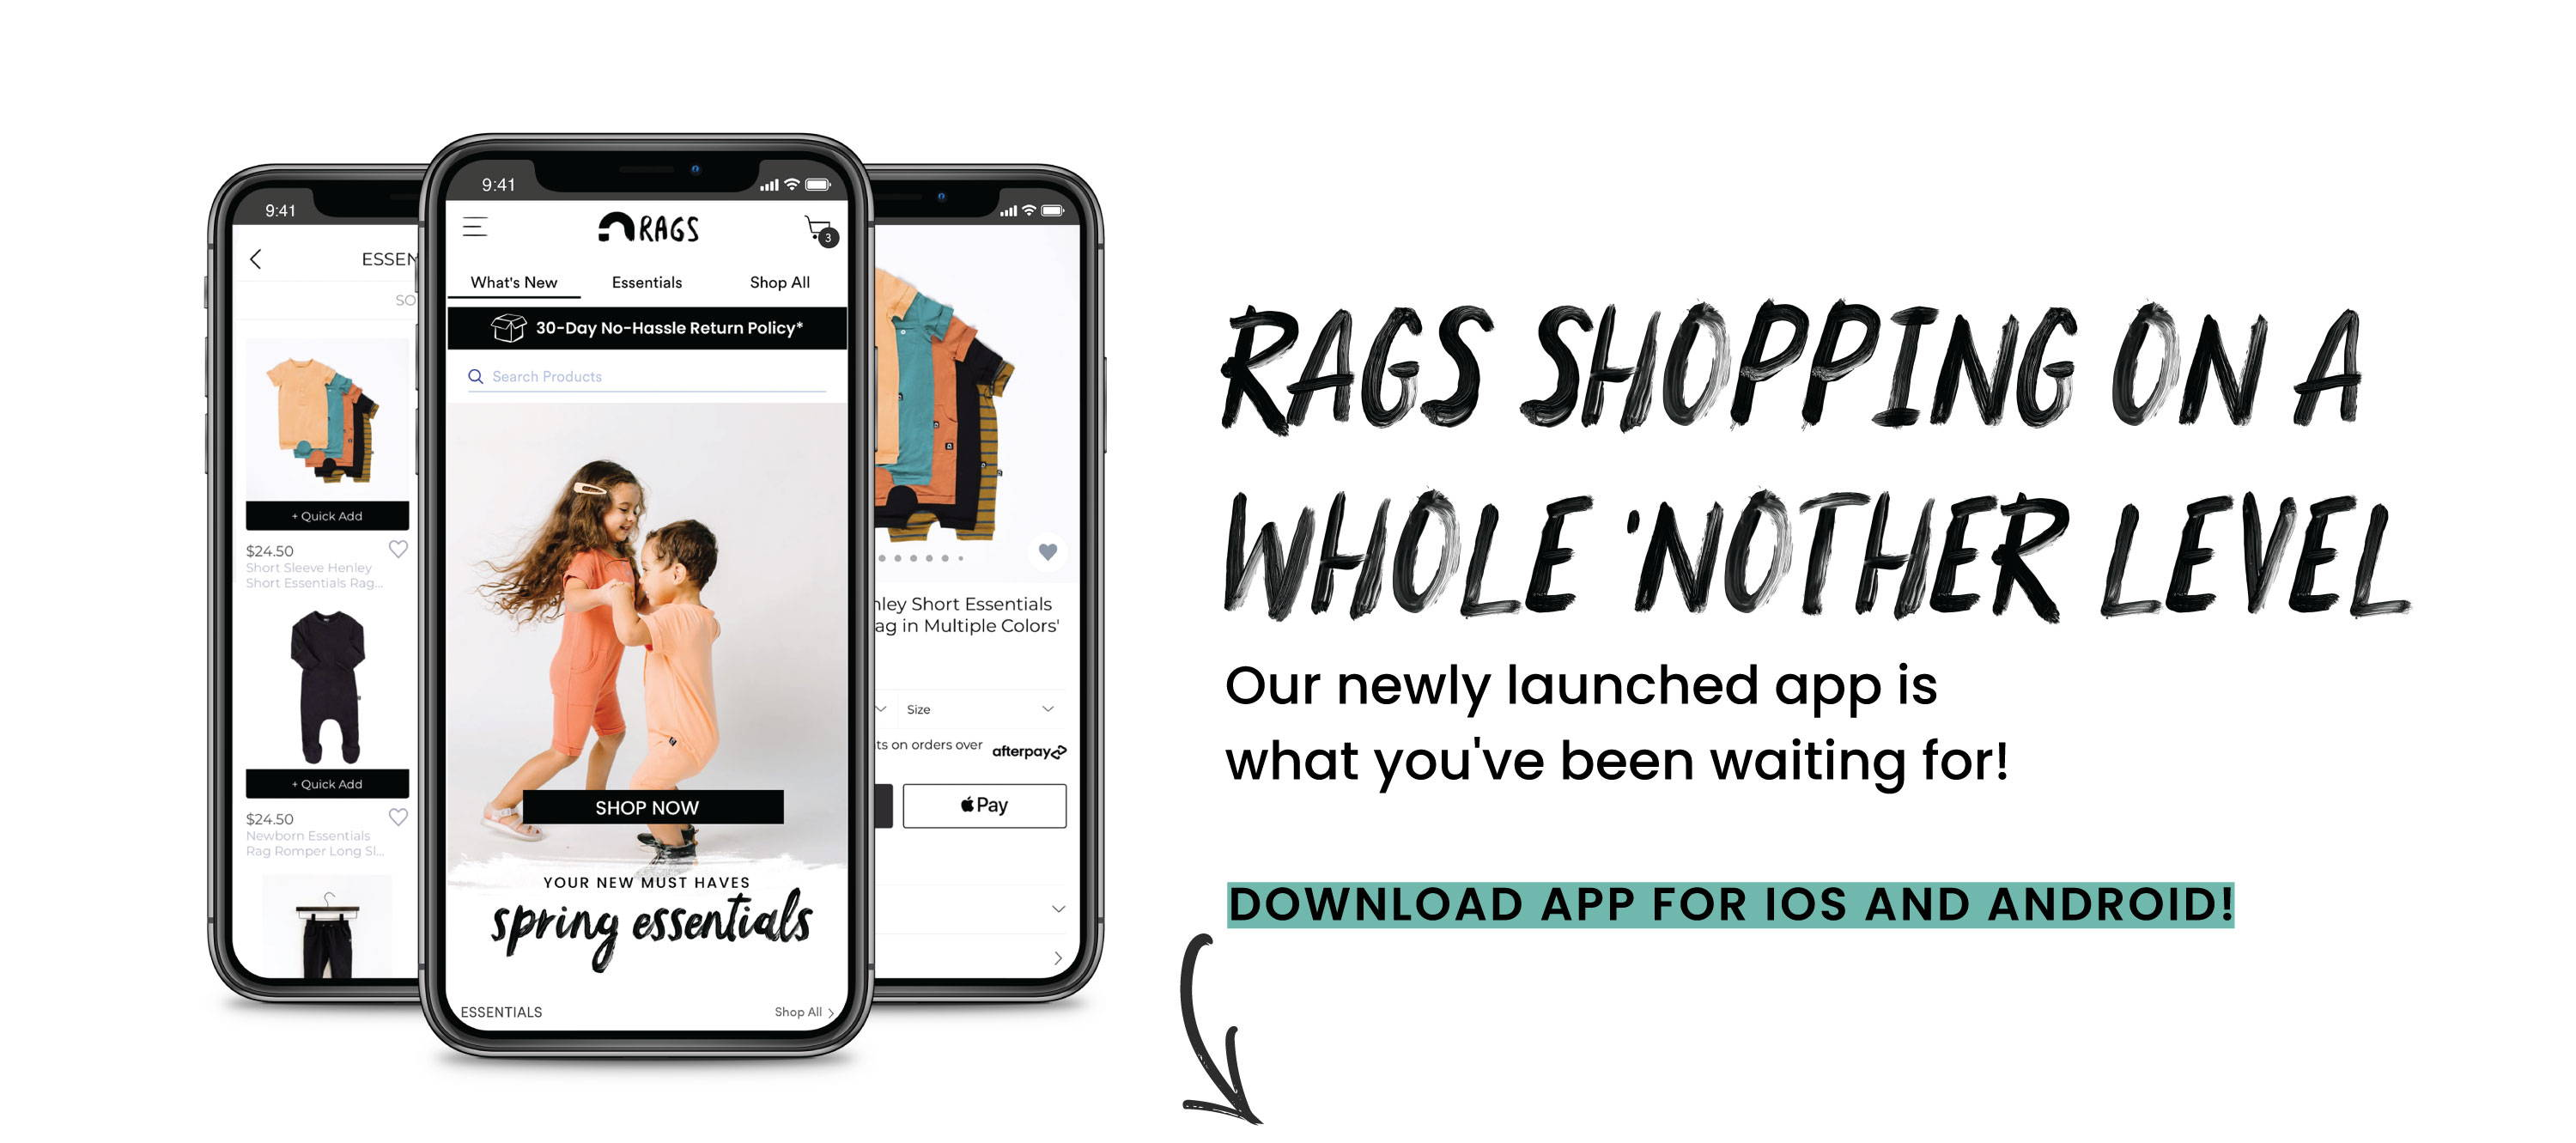 RAGS Mobile App - Easily shop for kid, baby, and newborn clothes from your mobile device!